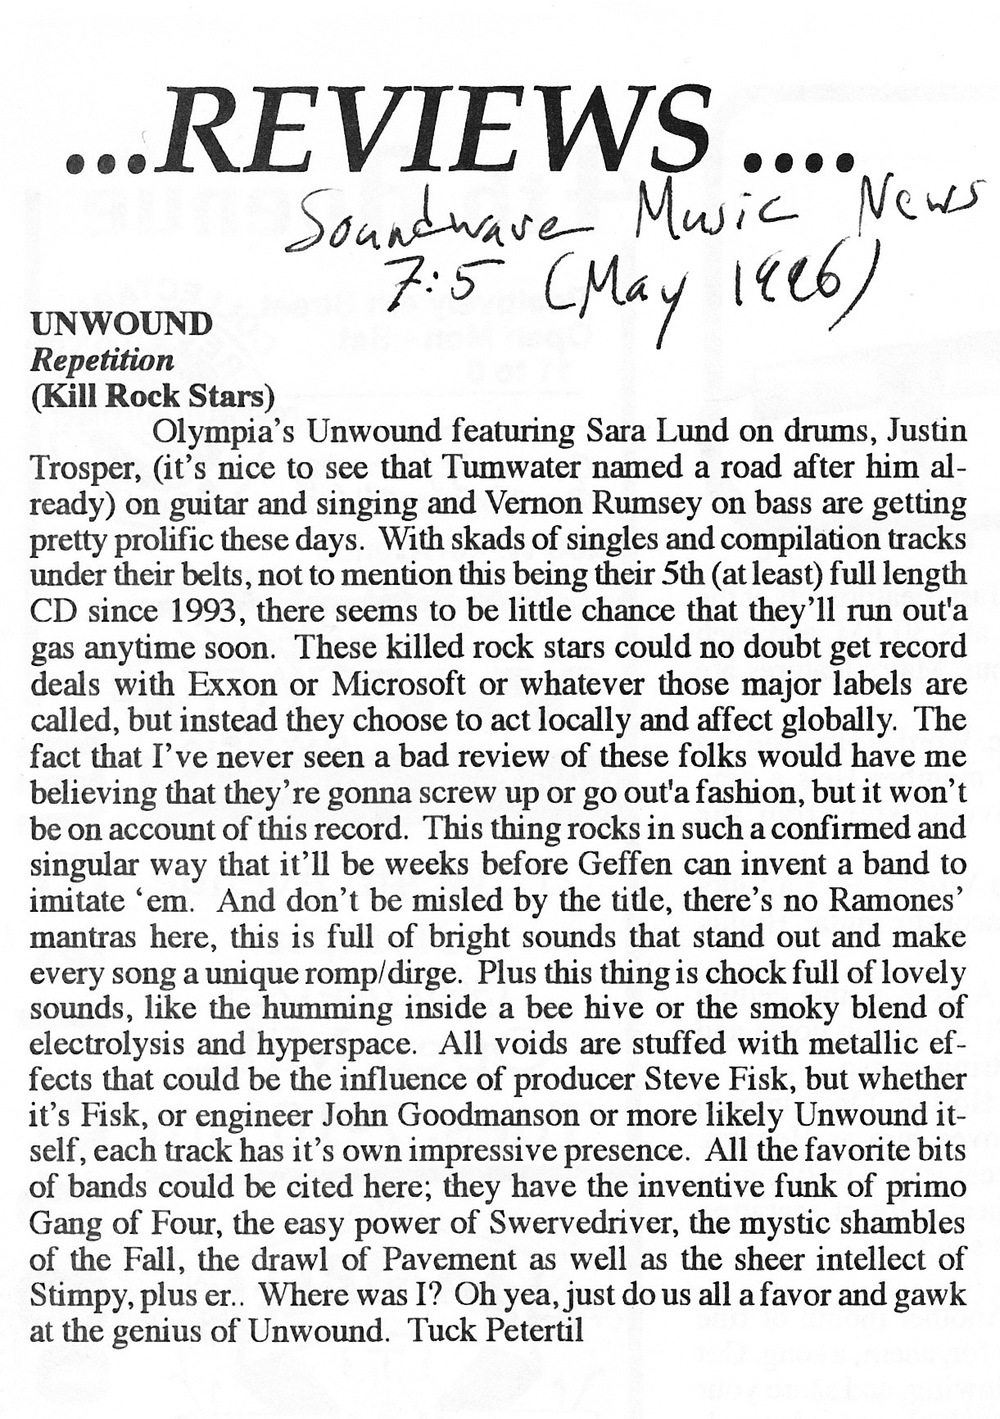 Soundwave Music News Repetition review May 1996